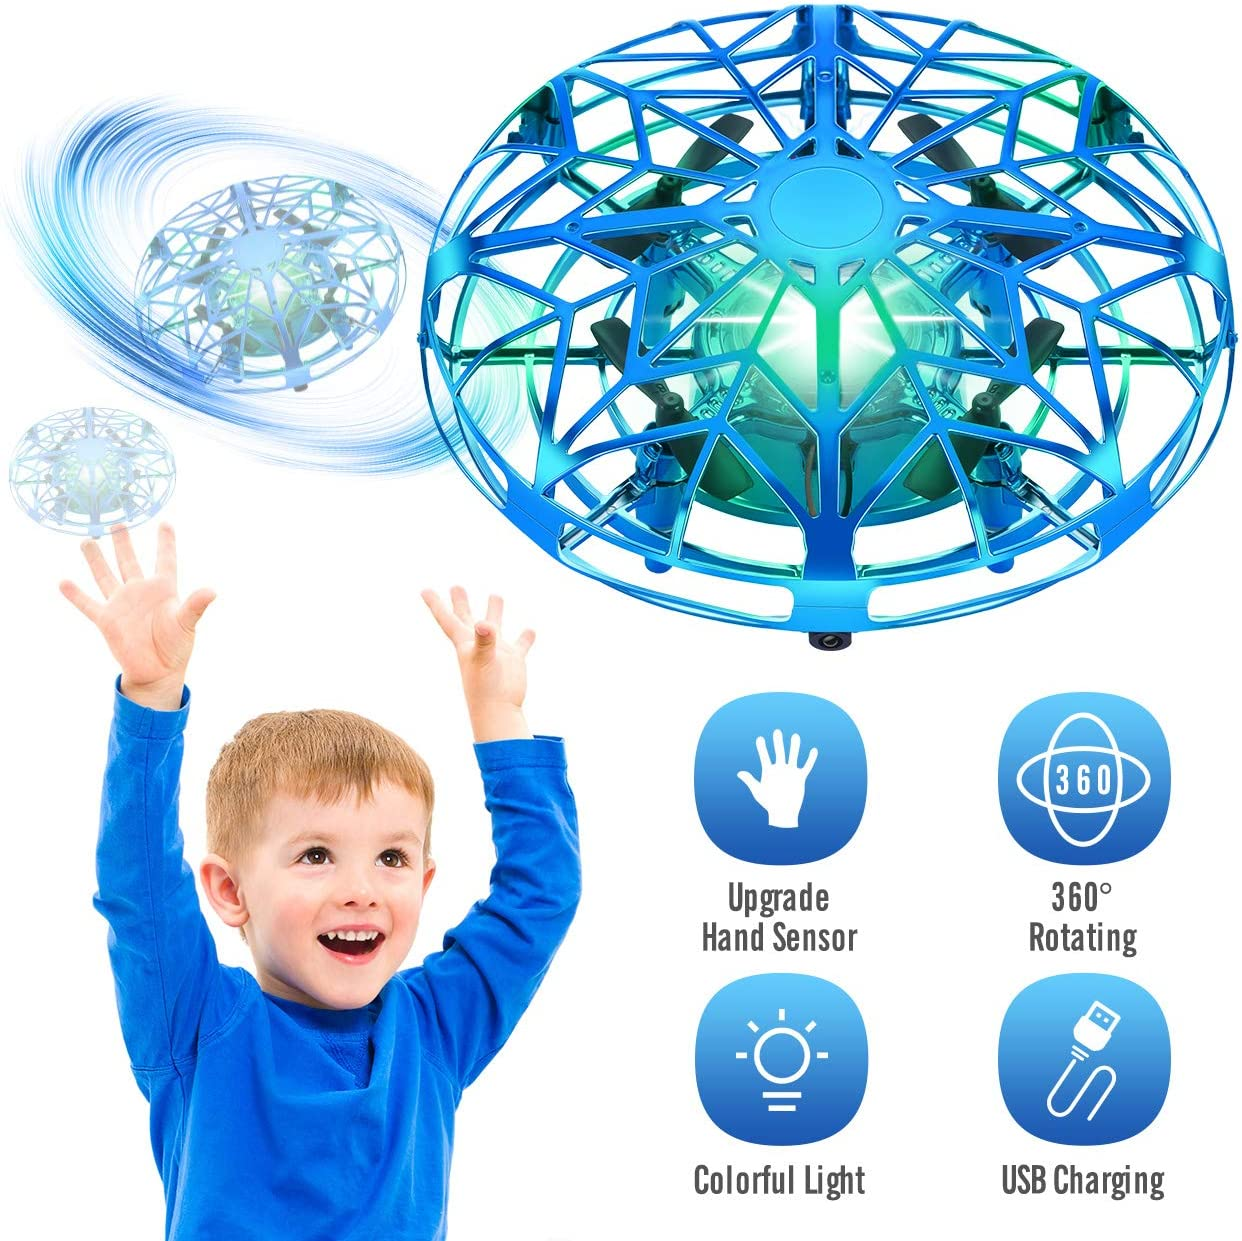 Tesoky Hand Operated Drones for Kids or Adults with 360°Rotating and Colorful LED Lights, Flying UFO Cool Toys for Kids Play Indoor or Outdoor,Best Gifts for Kids Boys Girls-Blue